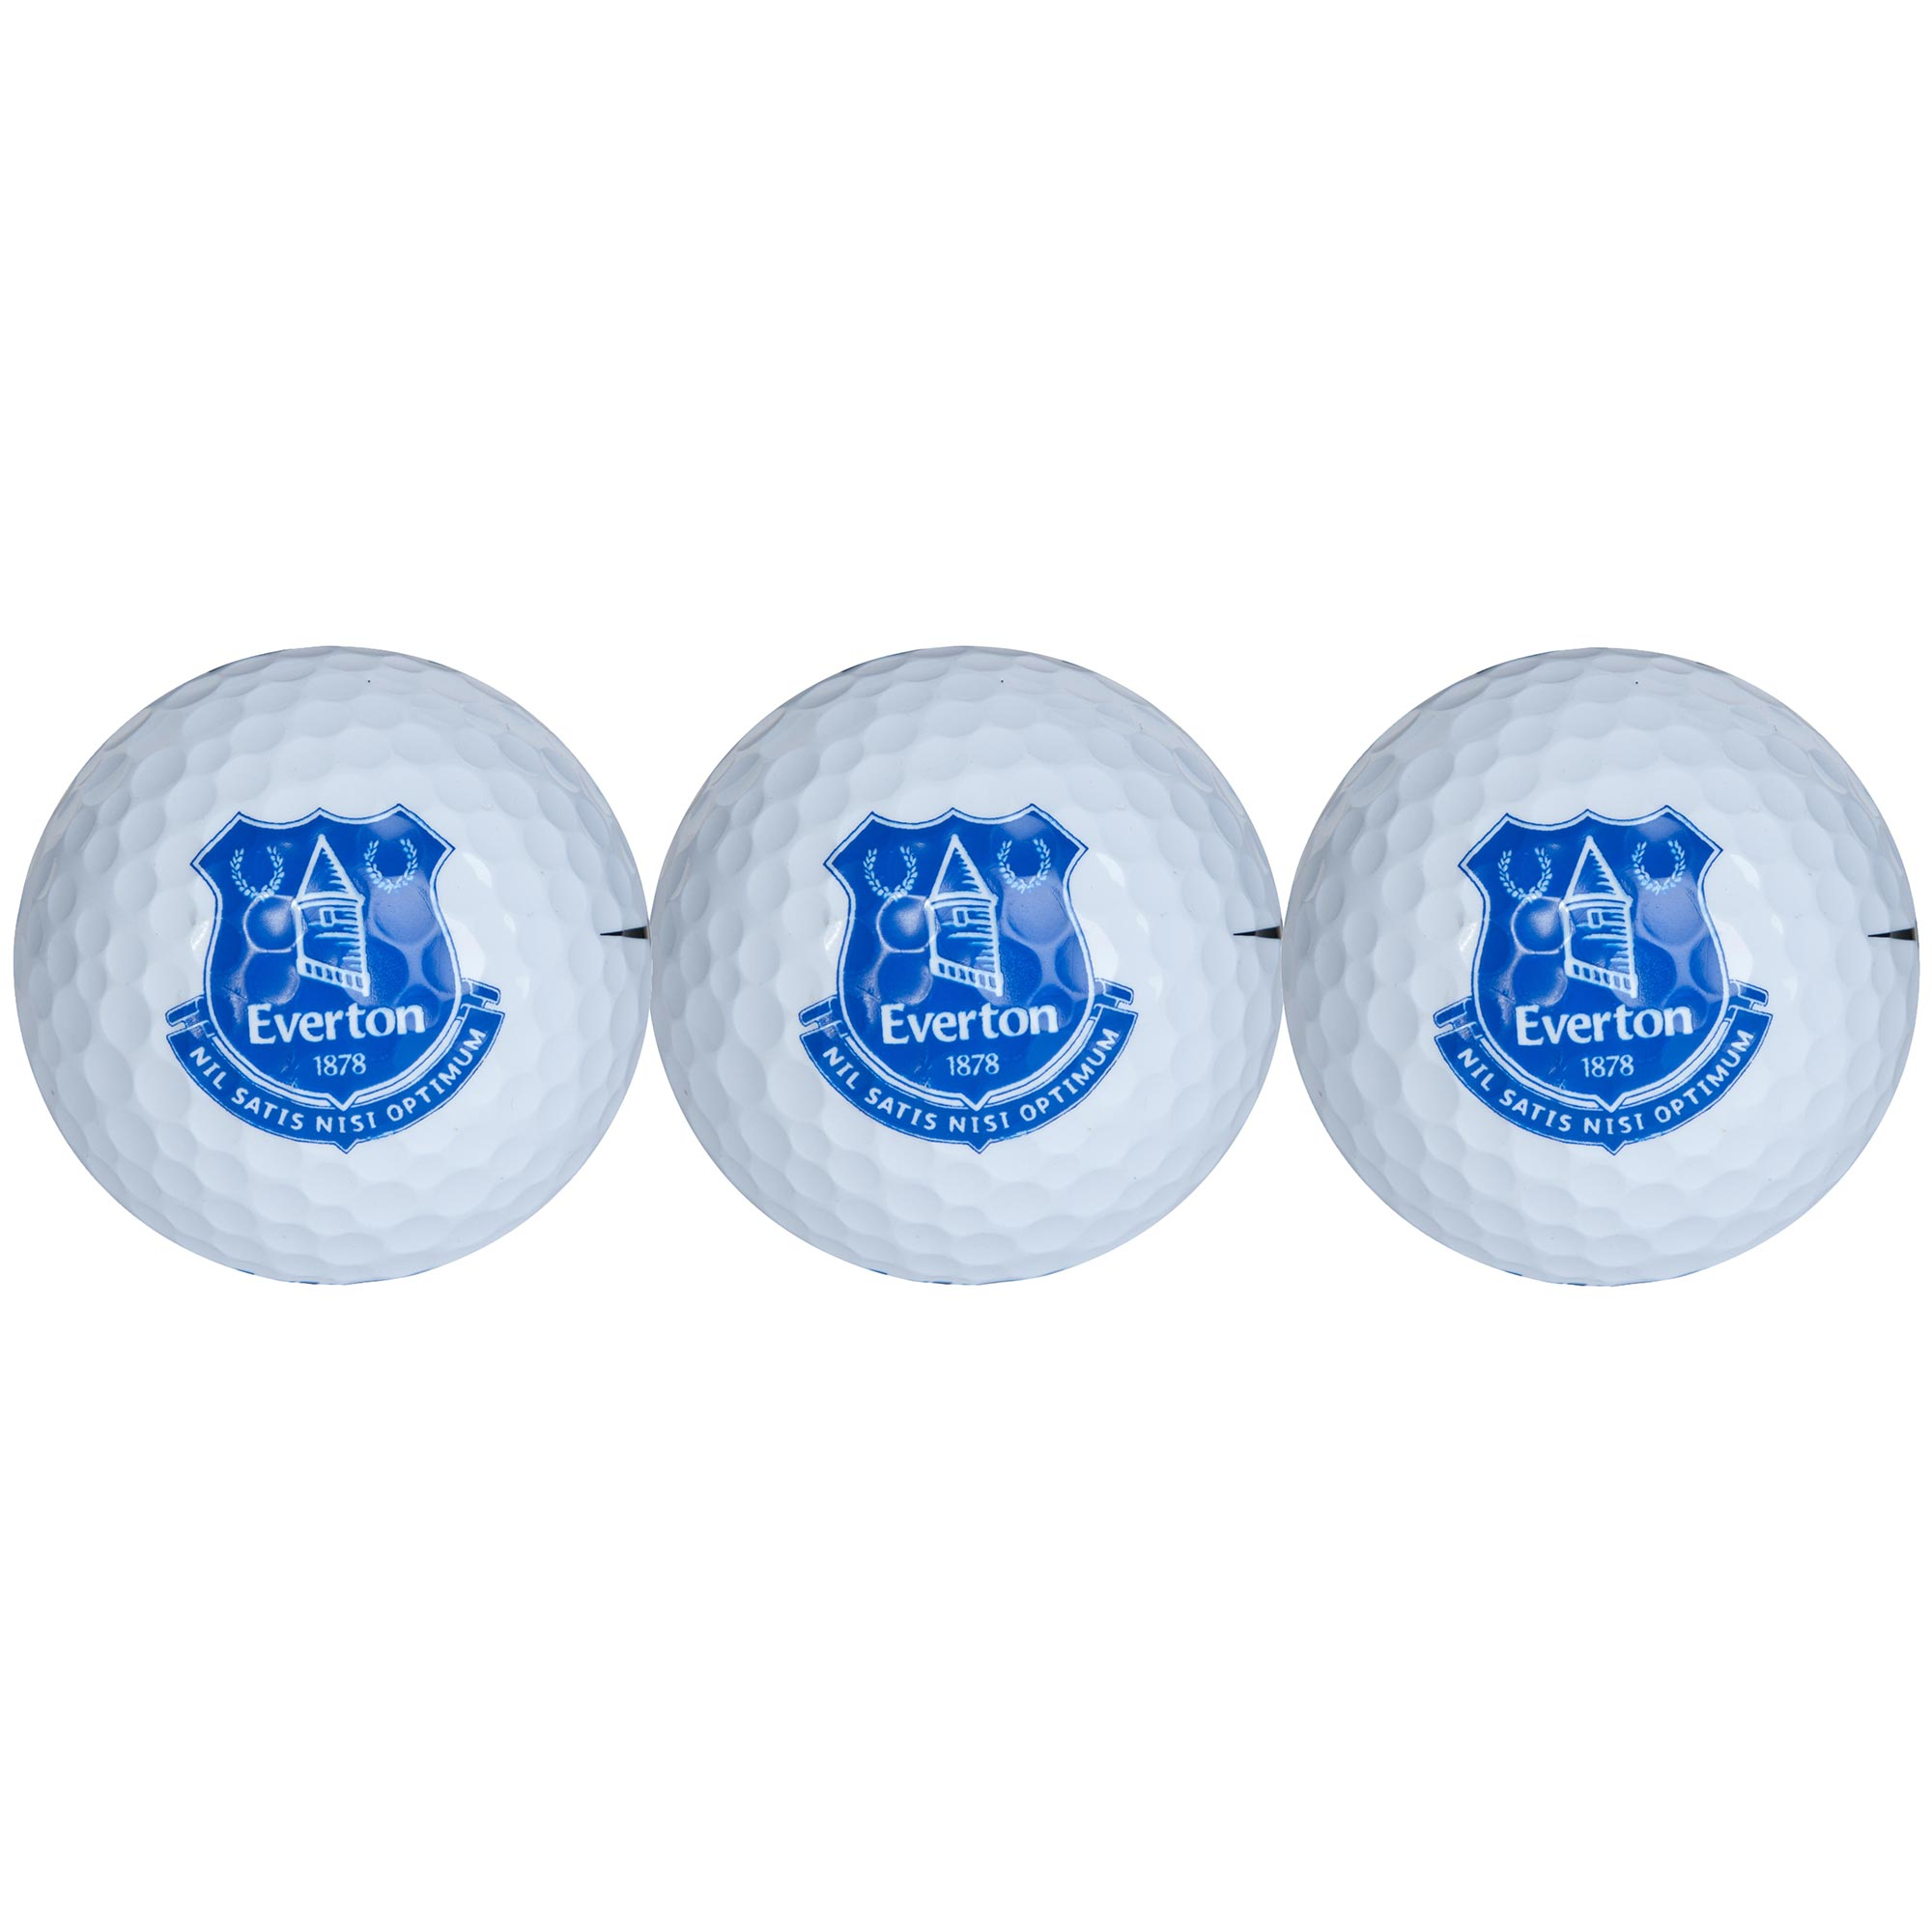 Everton Golf Balls - Pack of 3